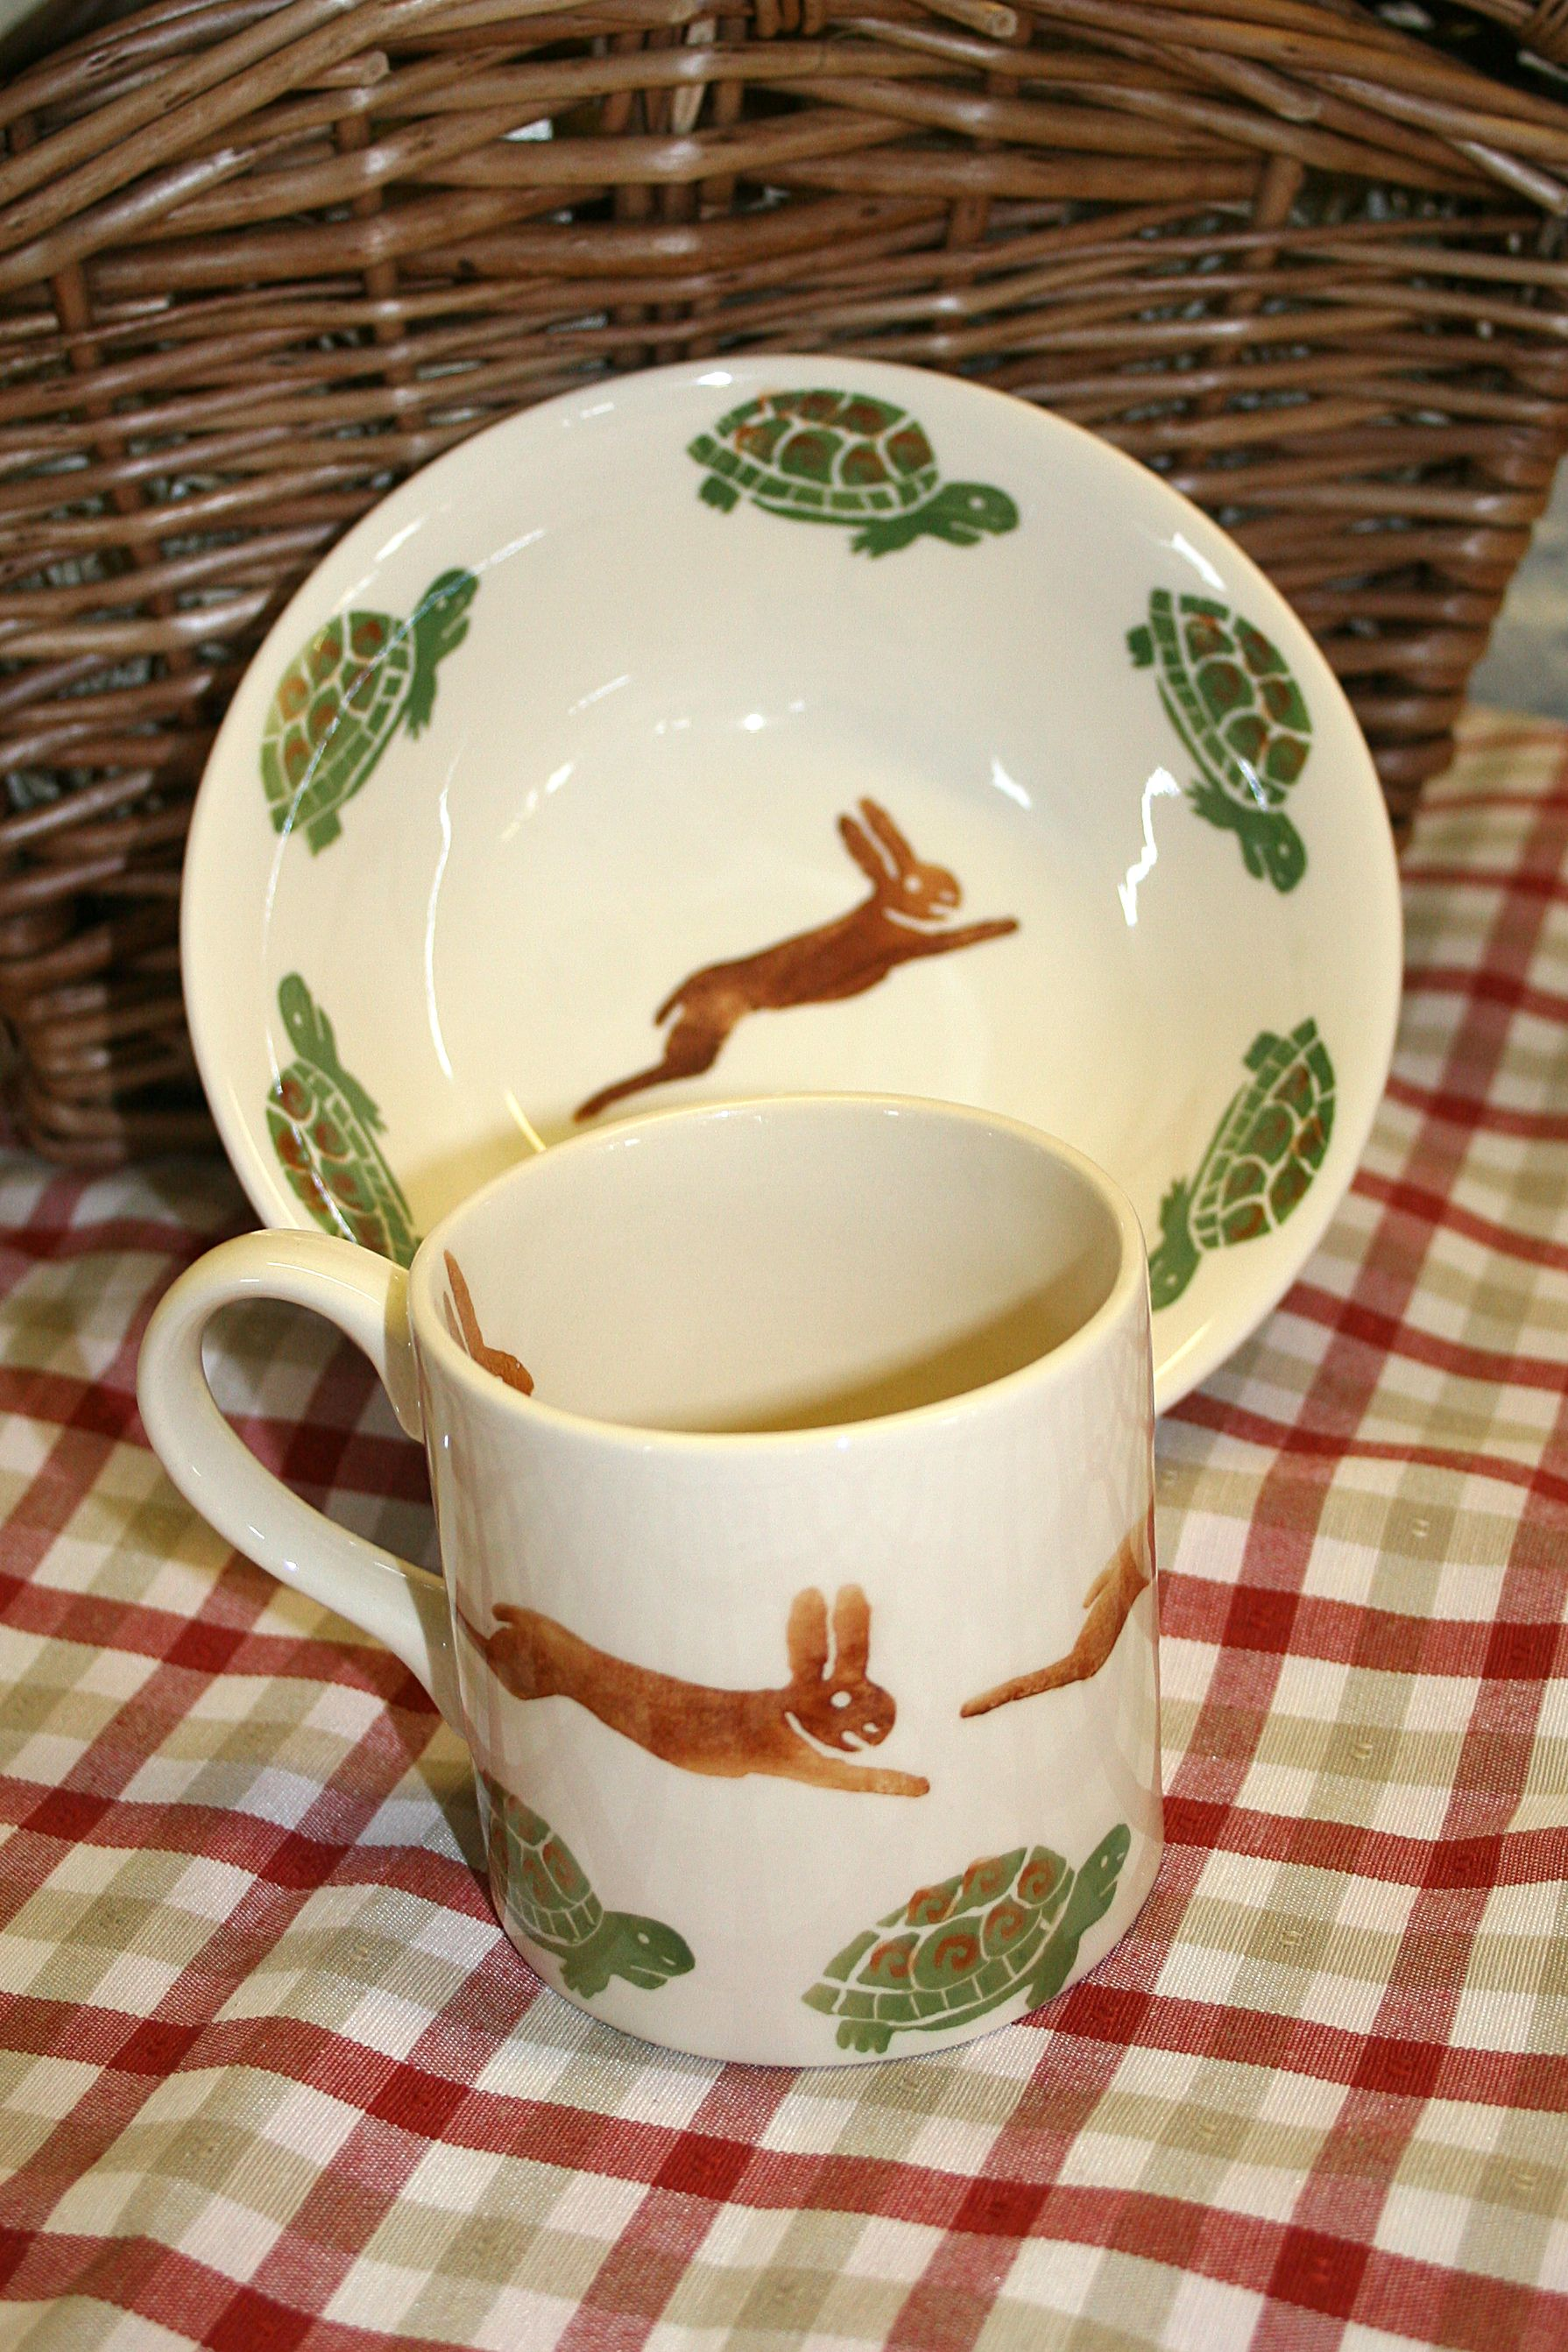 Childrens Set Of Hare And Tortoise Www Peregrinepottery Co Uk Childrens Dishes Beautiful Bowls Giftware